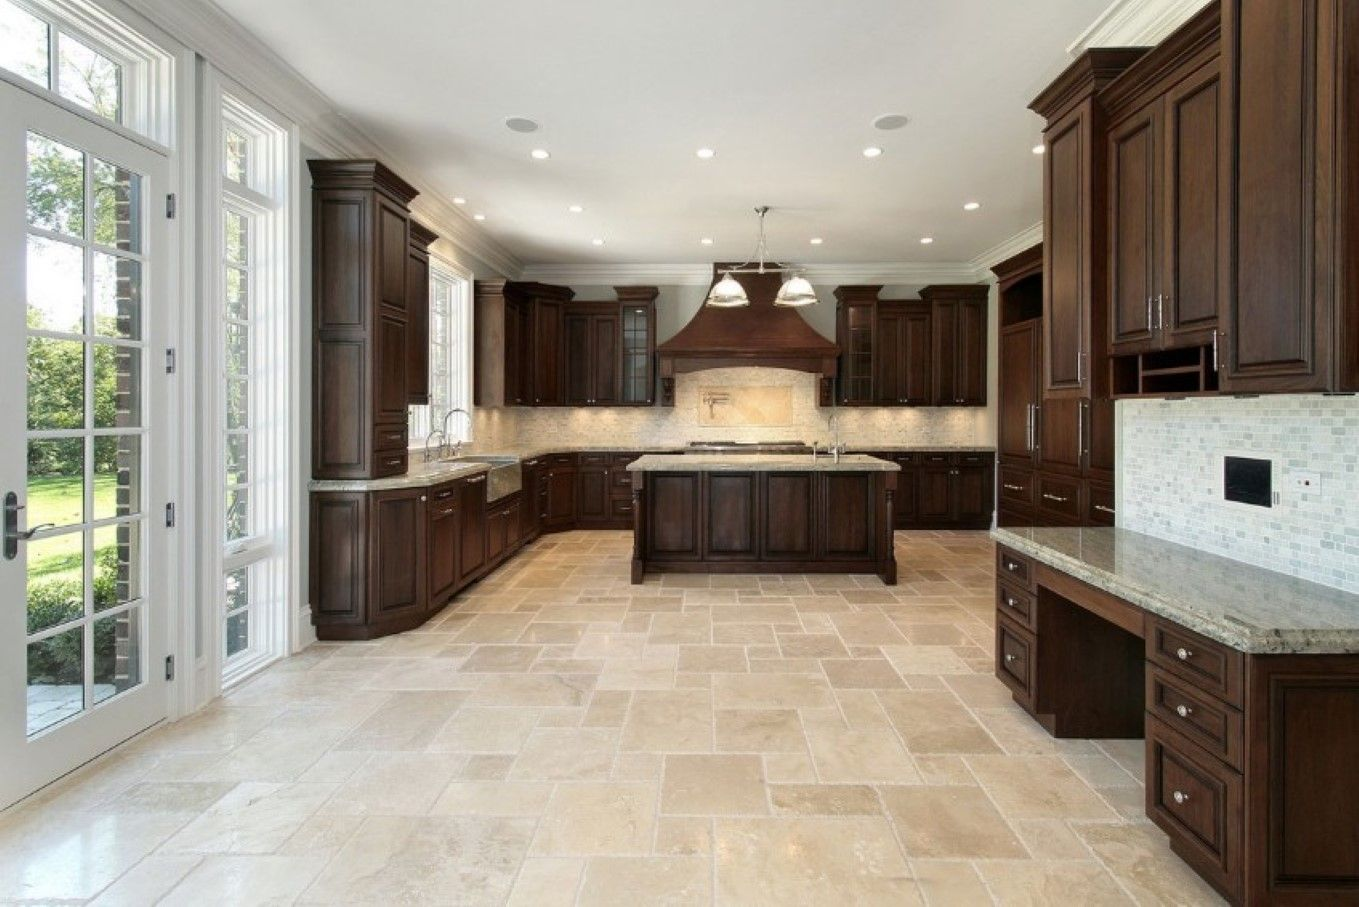 contemporary black wooden cabinets and awesome kitchen flooring tile rh pinterest com